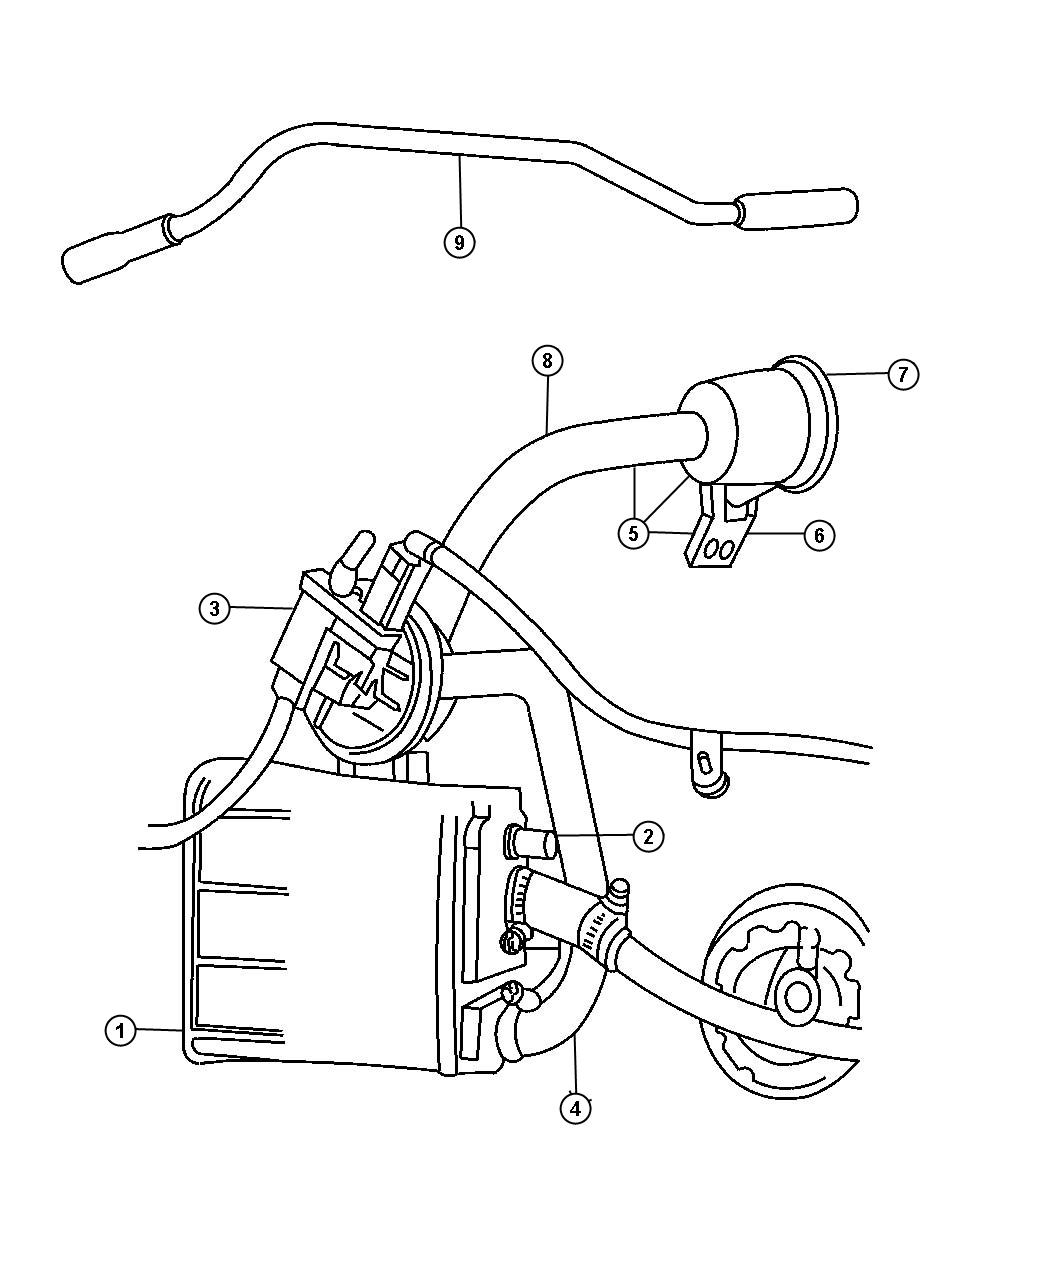 Chrysler Seabreeze Fuel Pump Wiring Diagram